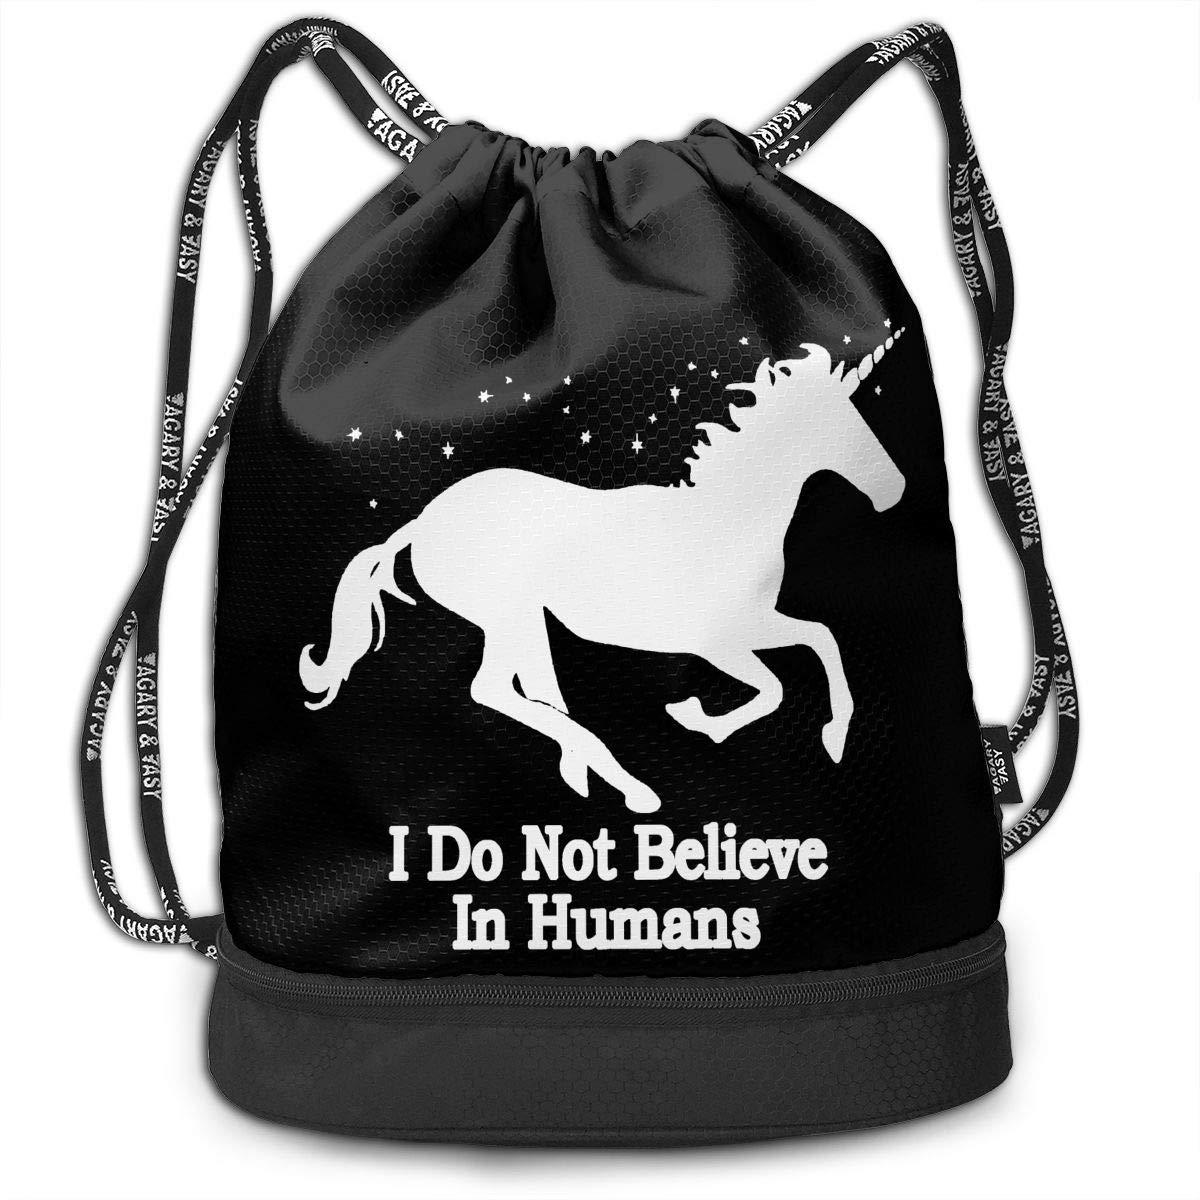 HFTIDBC I Am A Unicorn and I Do Not Believe in Humans ポンプロープバッグ バックパック   B07KPTG75M